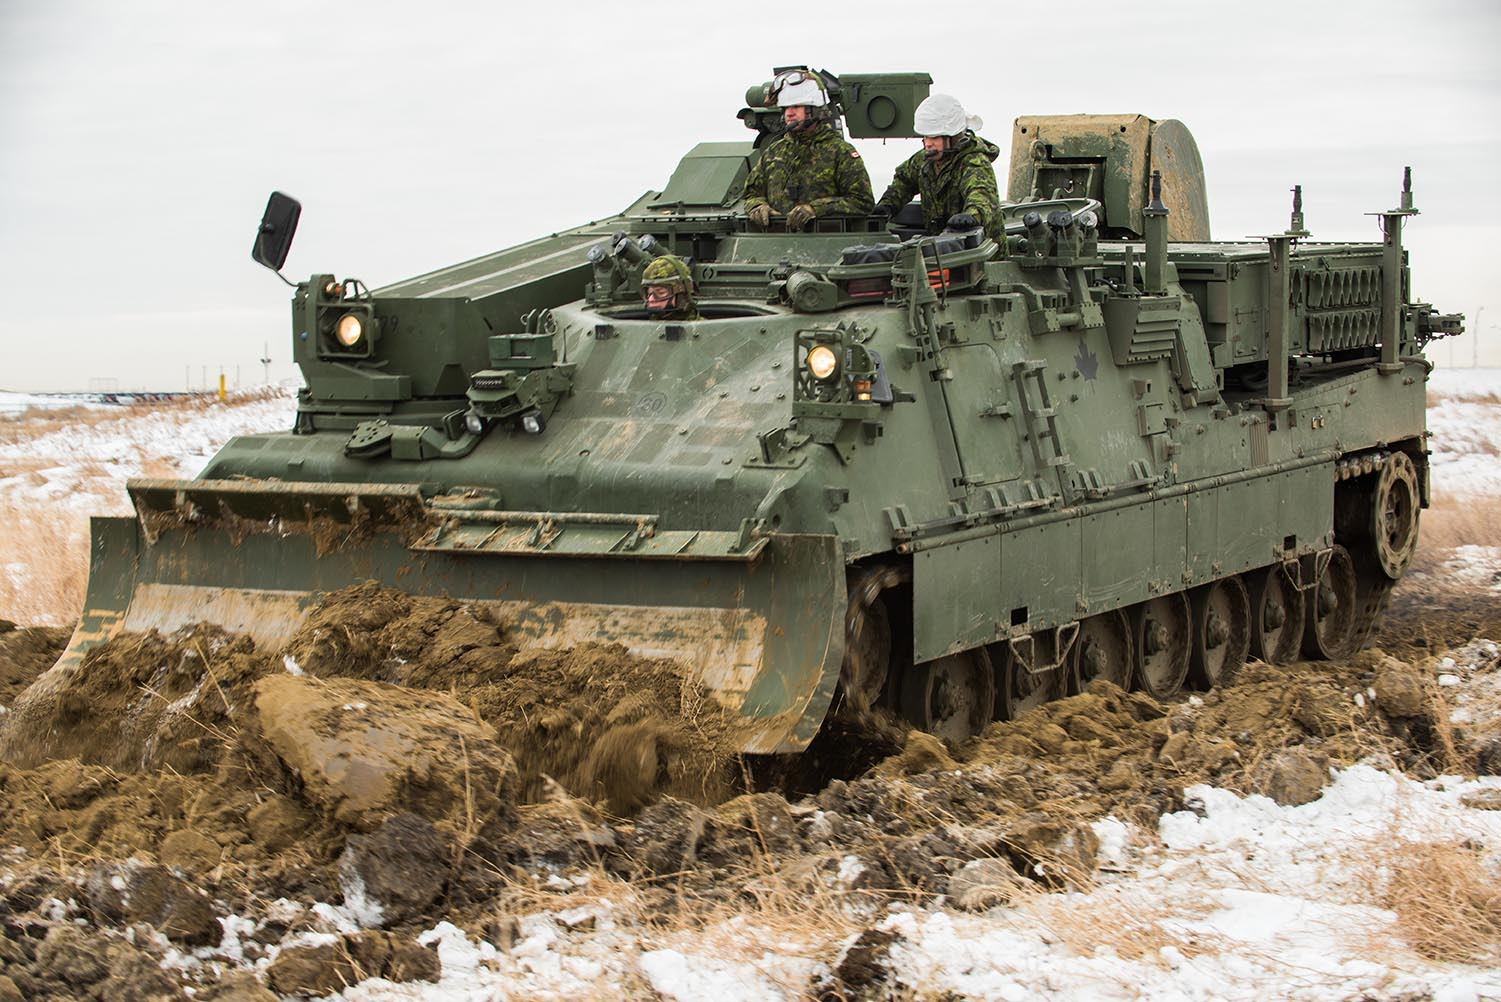 Master Corporal Joseph Facoeitti, Crew Commander, Master Corporal Kasey Davis and Corporal Zachary Brum, Driver level ground during crew training on the Leopard 2 Armoured Engineering Vehicle conducted in the training area of 3rd Canadian Division Support Base Edmonton on December 4, 2017.